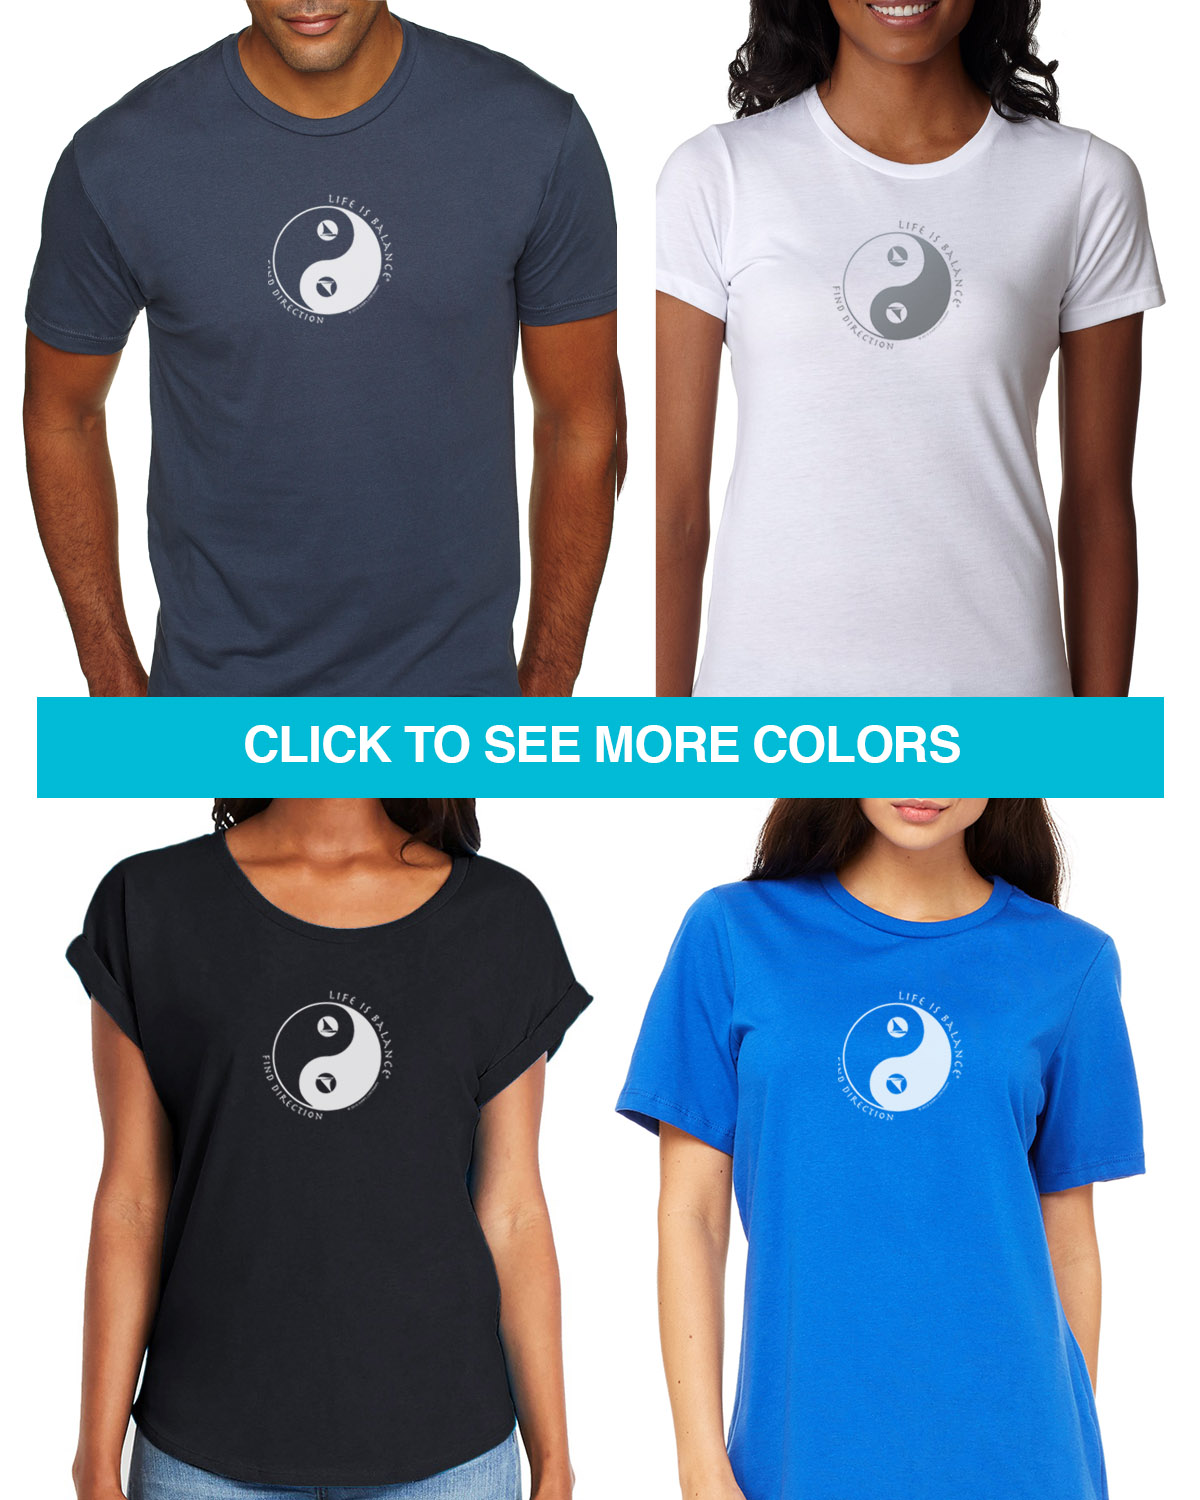 Short sleeve sailing t-shirts for Men and Women. Women's fitted styles and a unisex style for men and women